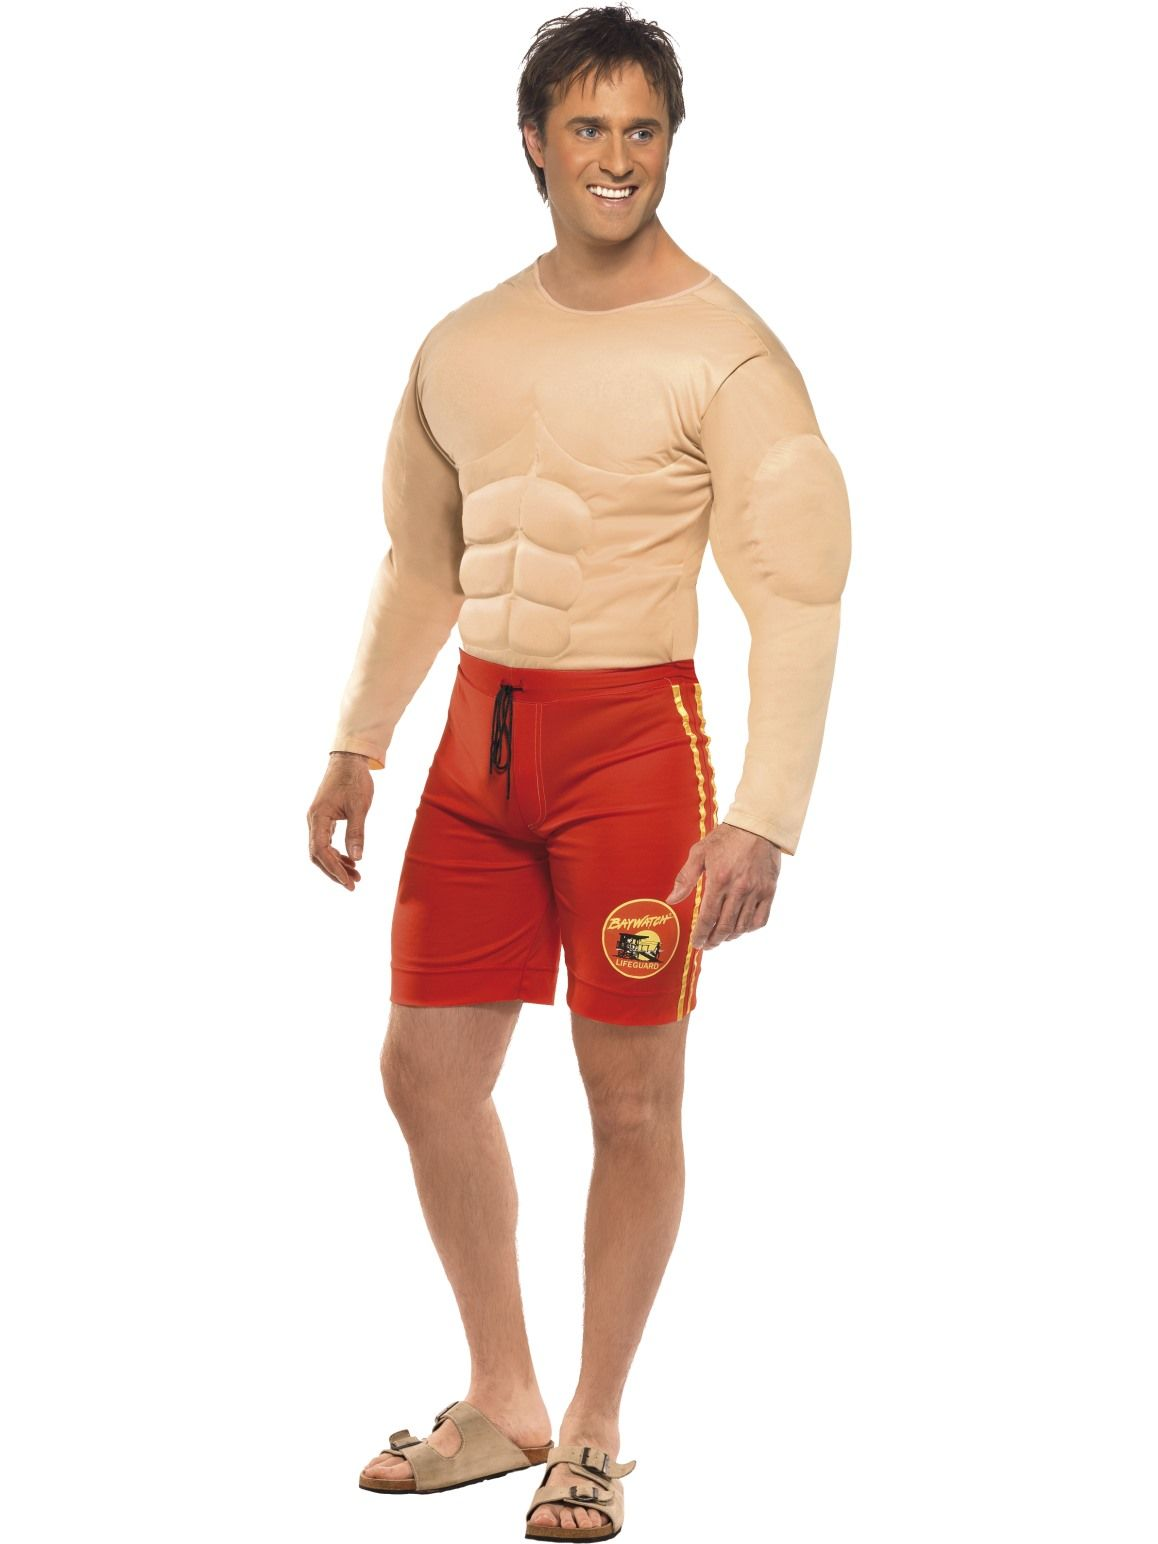 Baywatch Life Guard Muscle Costume - Buy Online Only